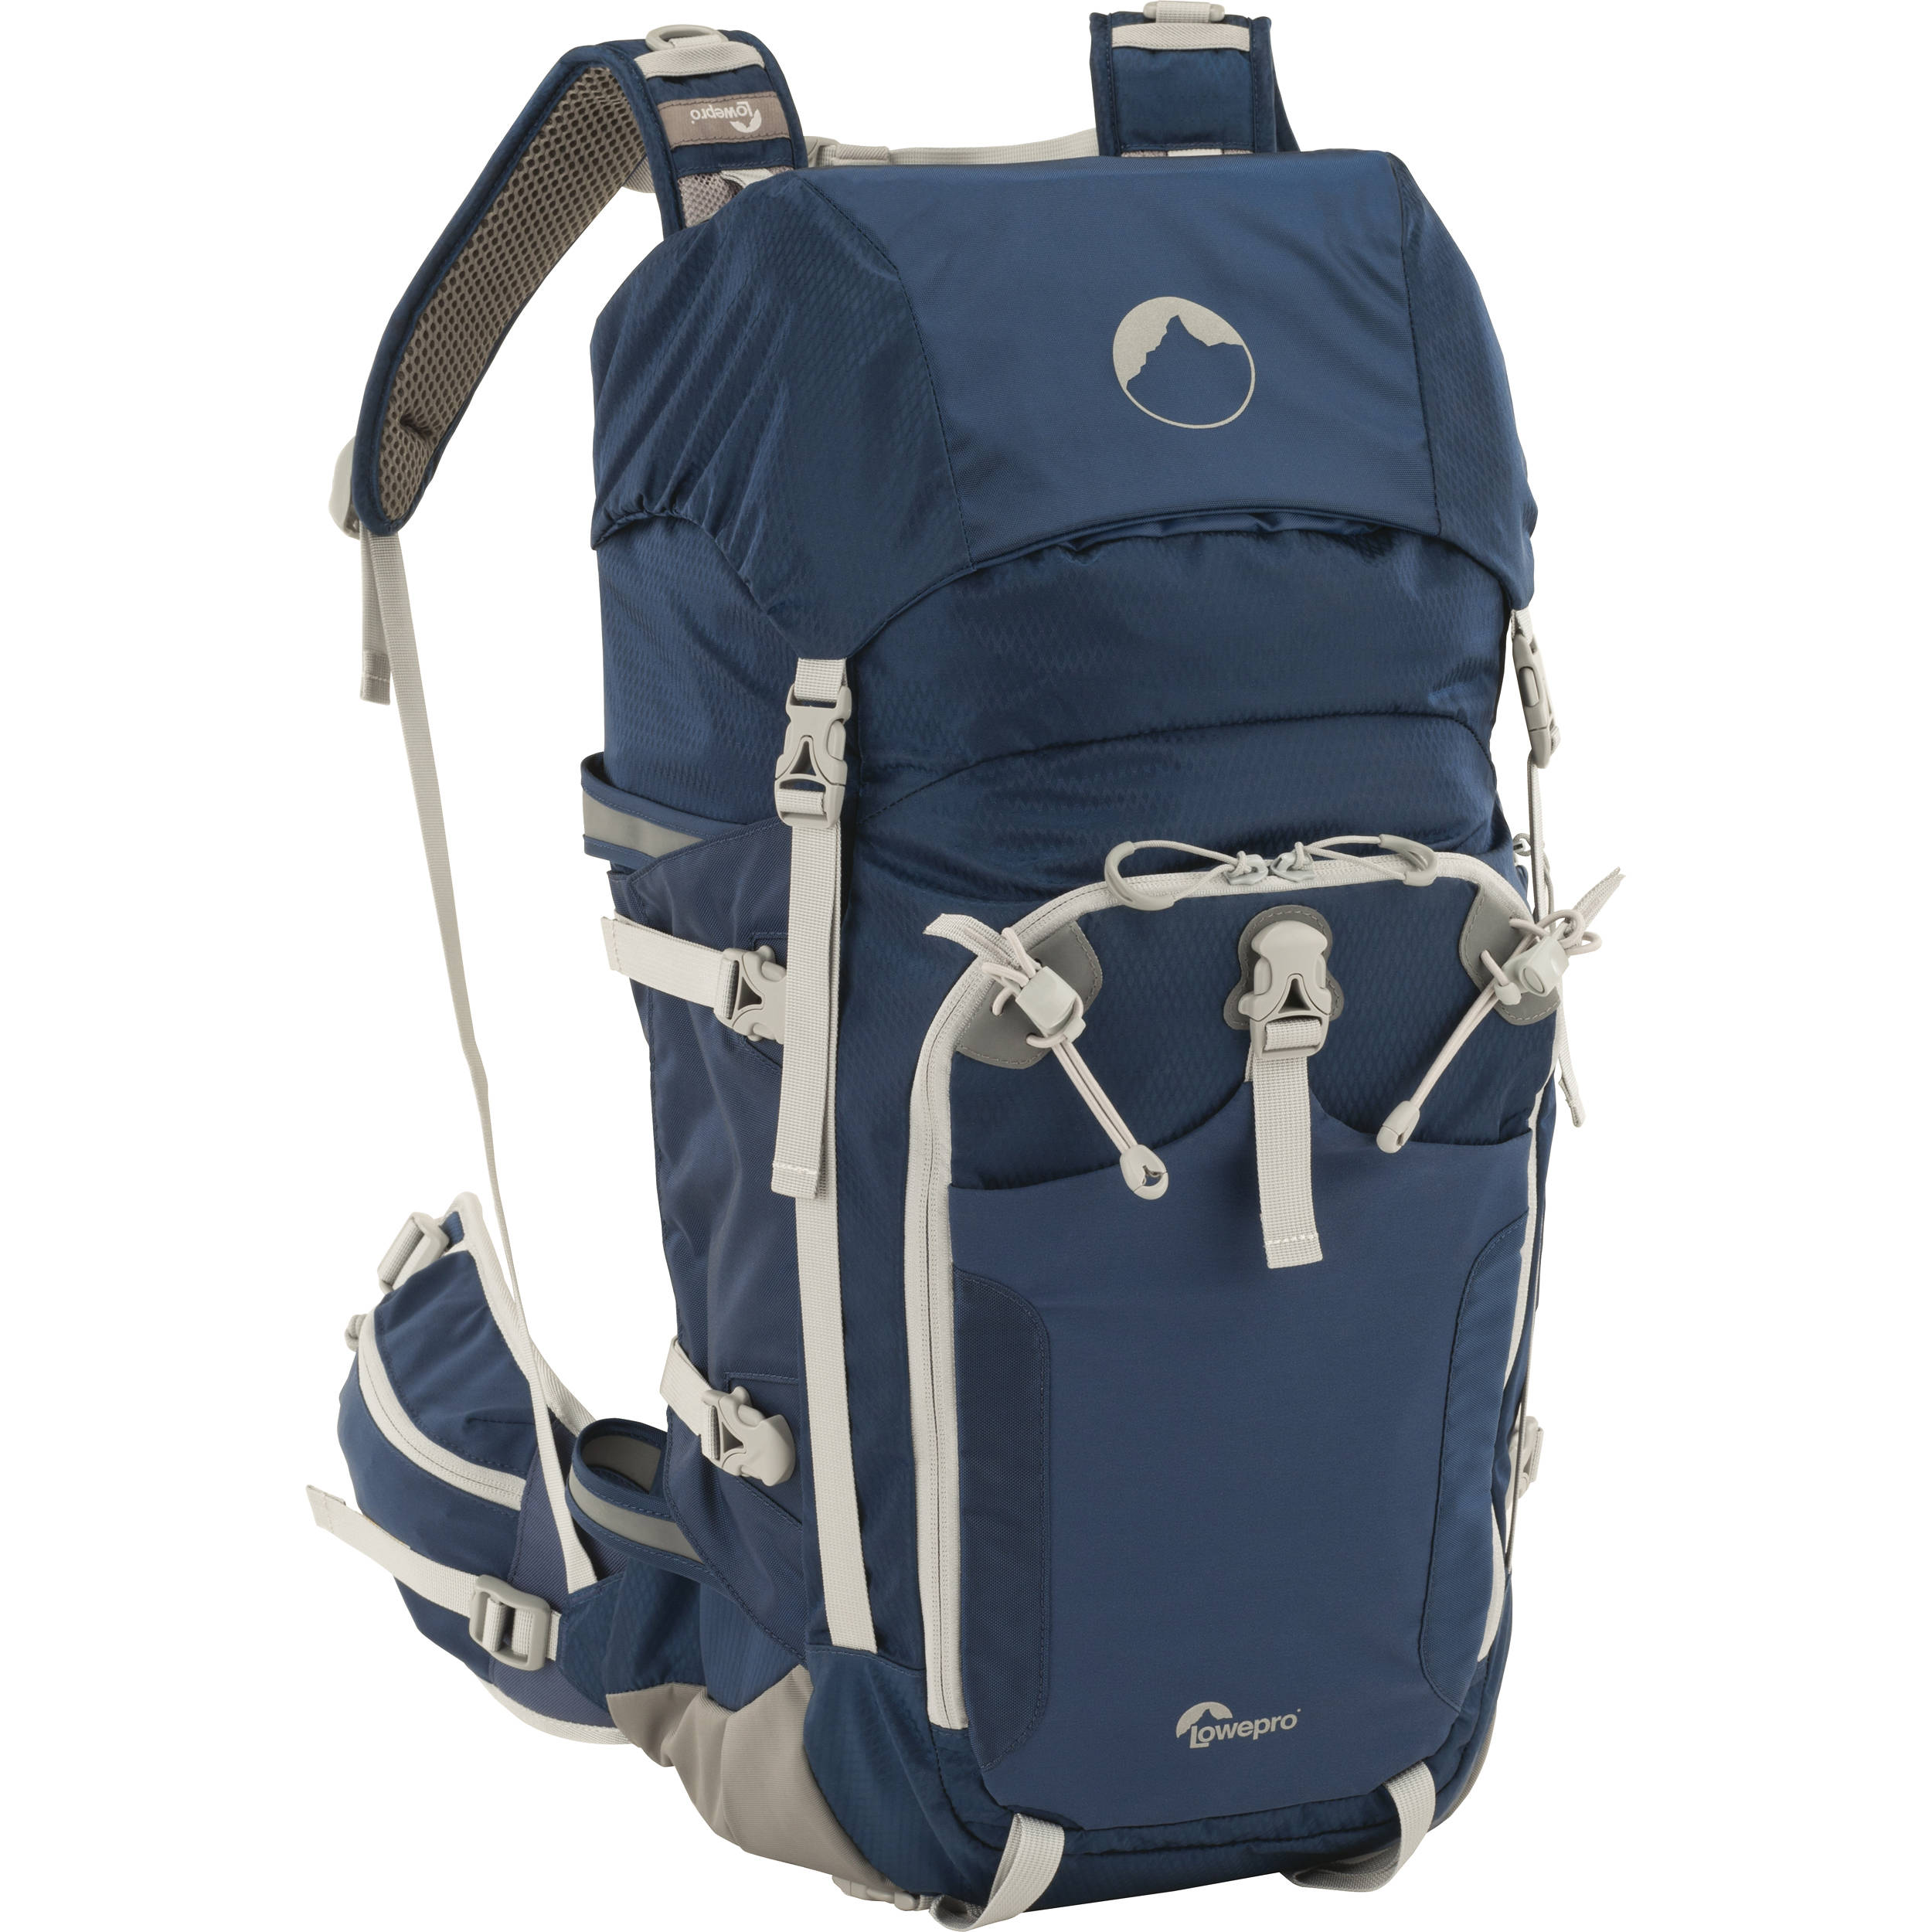 Lowepro Rover Pro 35L AW Backpack (Galaxy Blue with Light Gray Trim) 3365230ffbb62